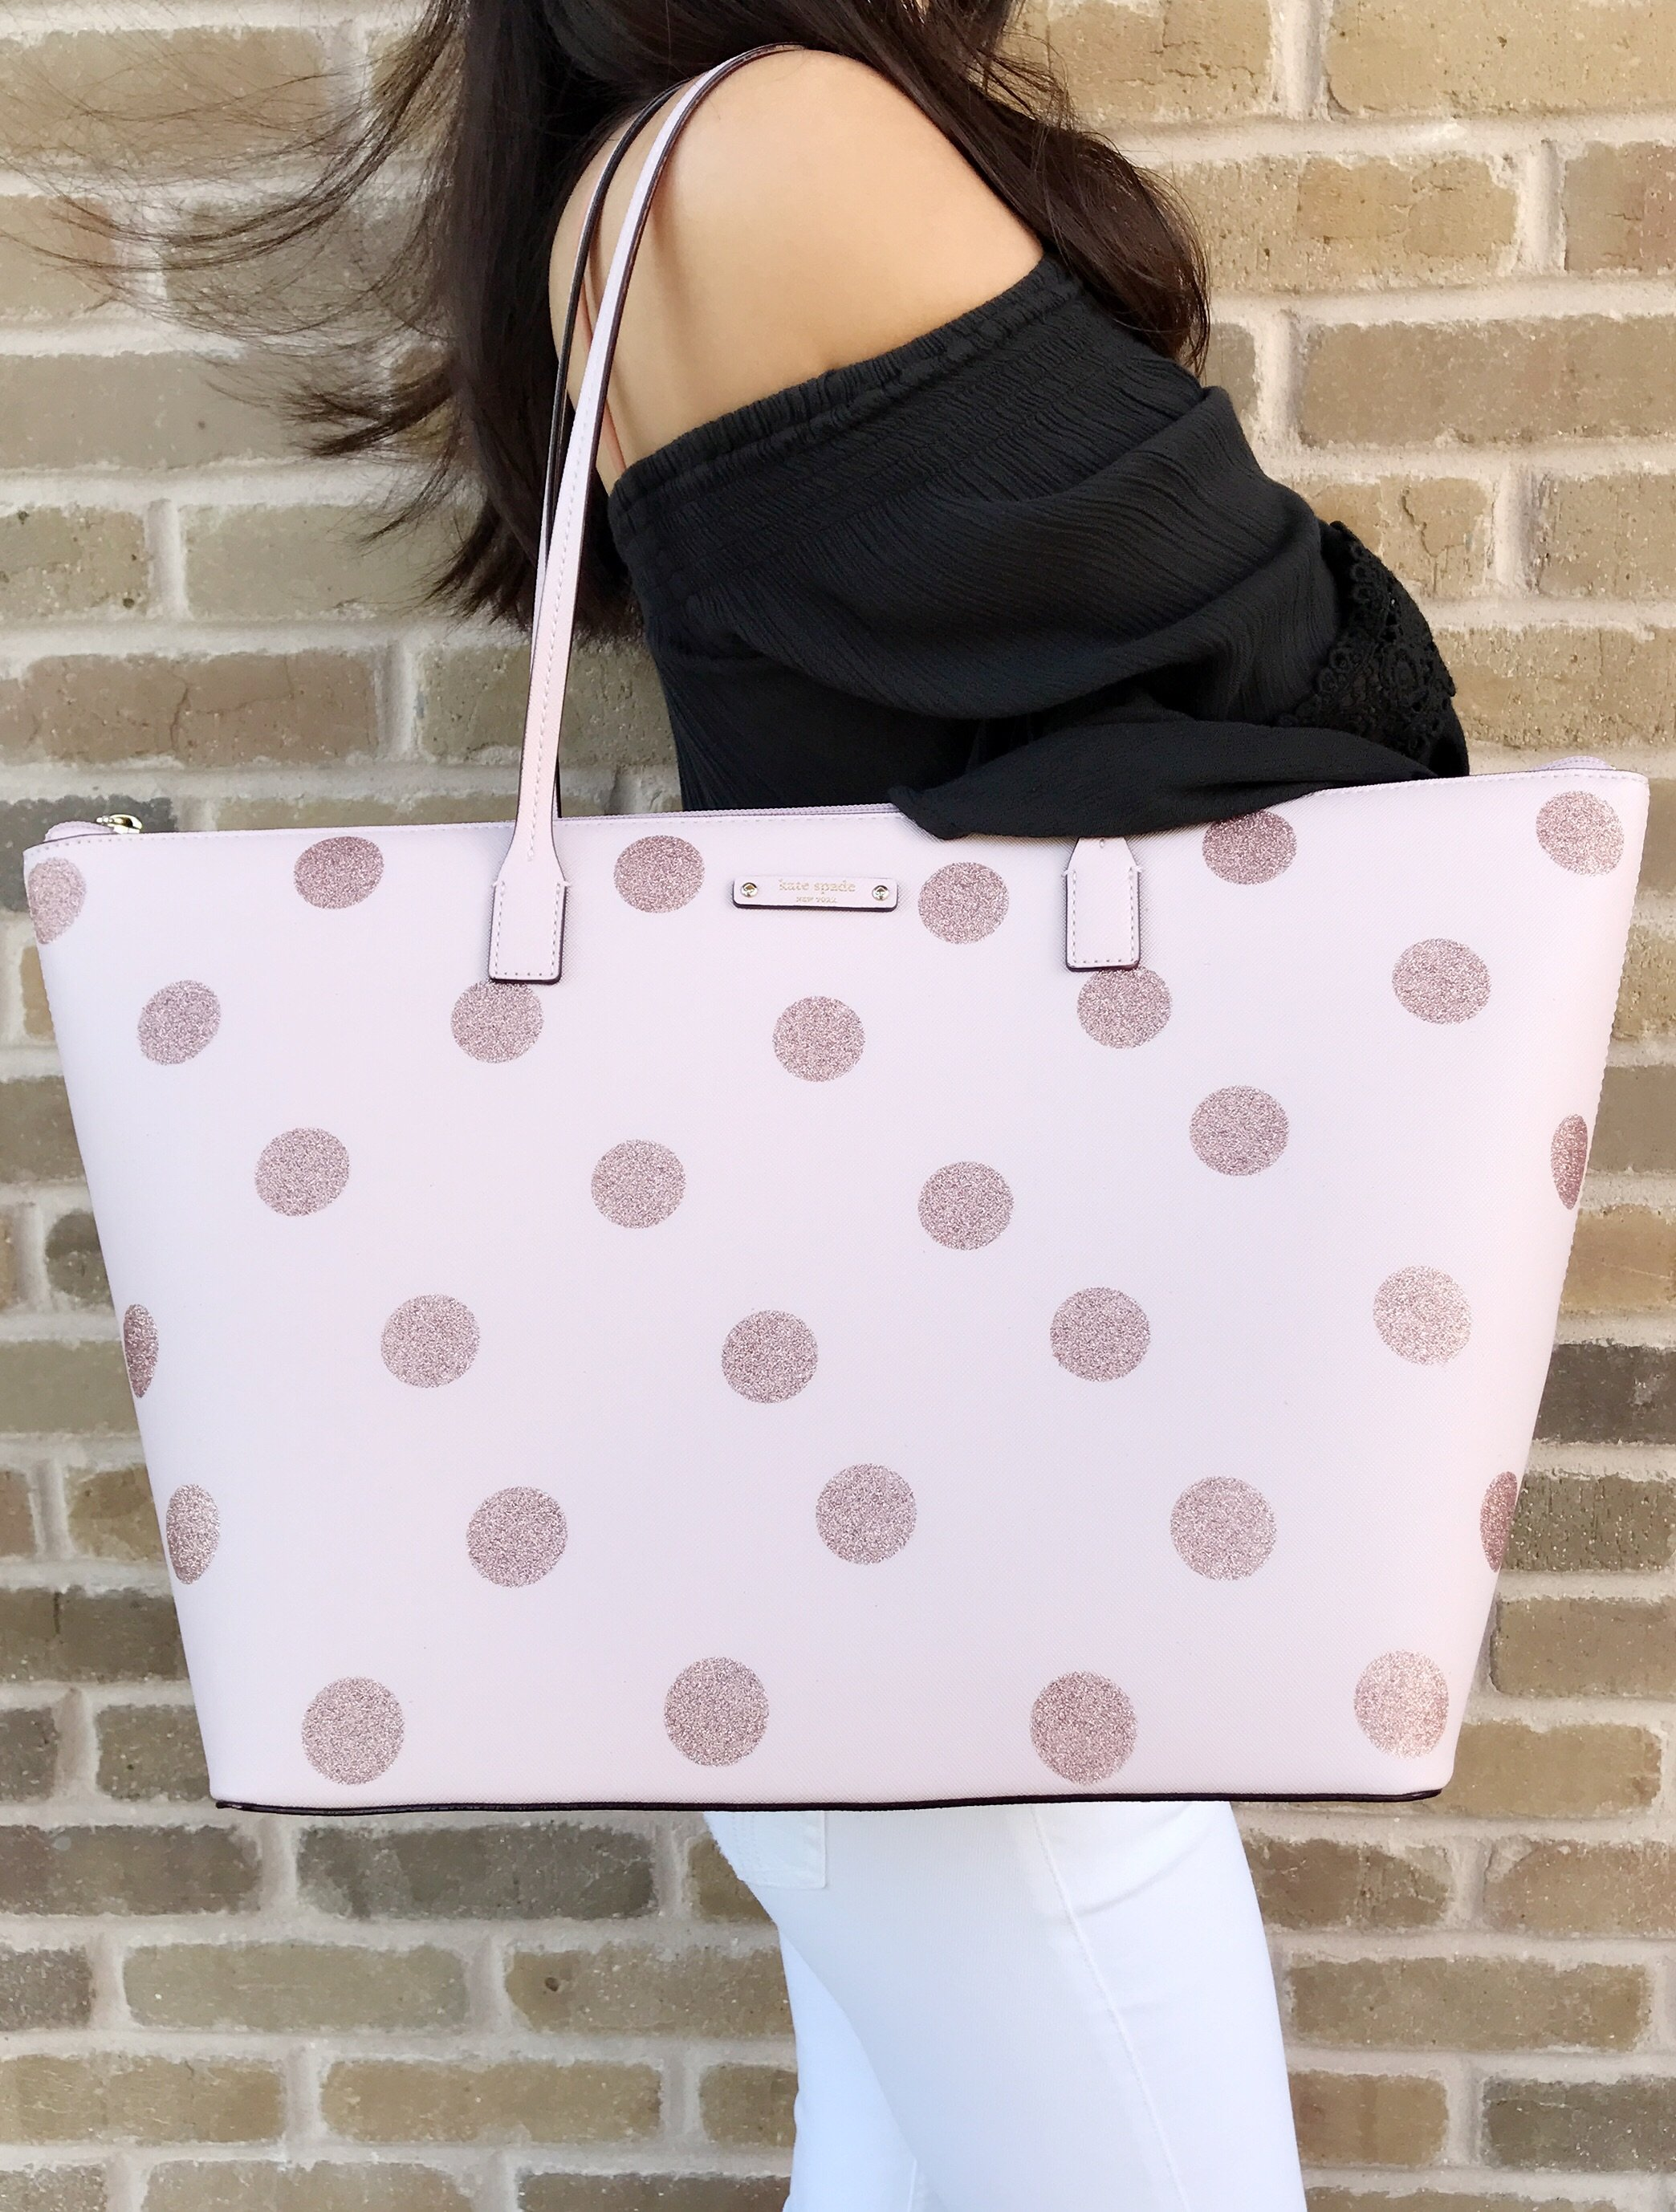 Nwt kate spade haven lane large hani tote glitter pink polka dot 19 l x 115 h x 6 w junglespirit Image collections